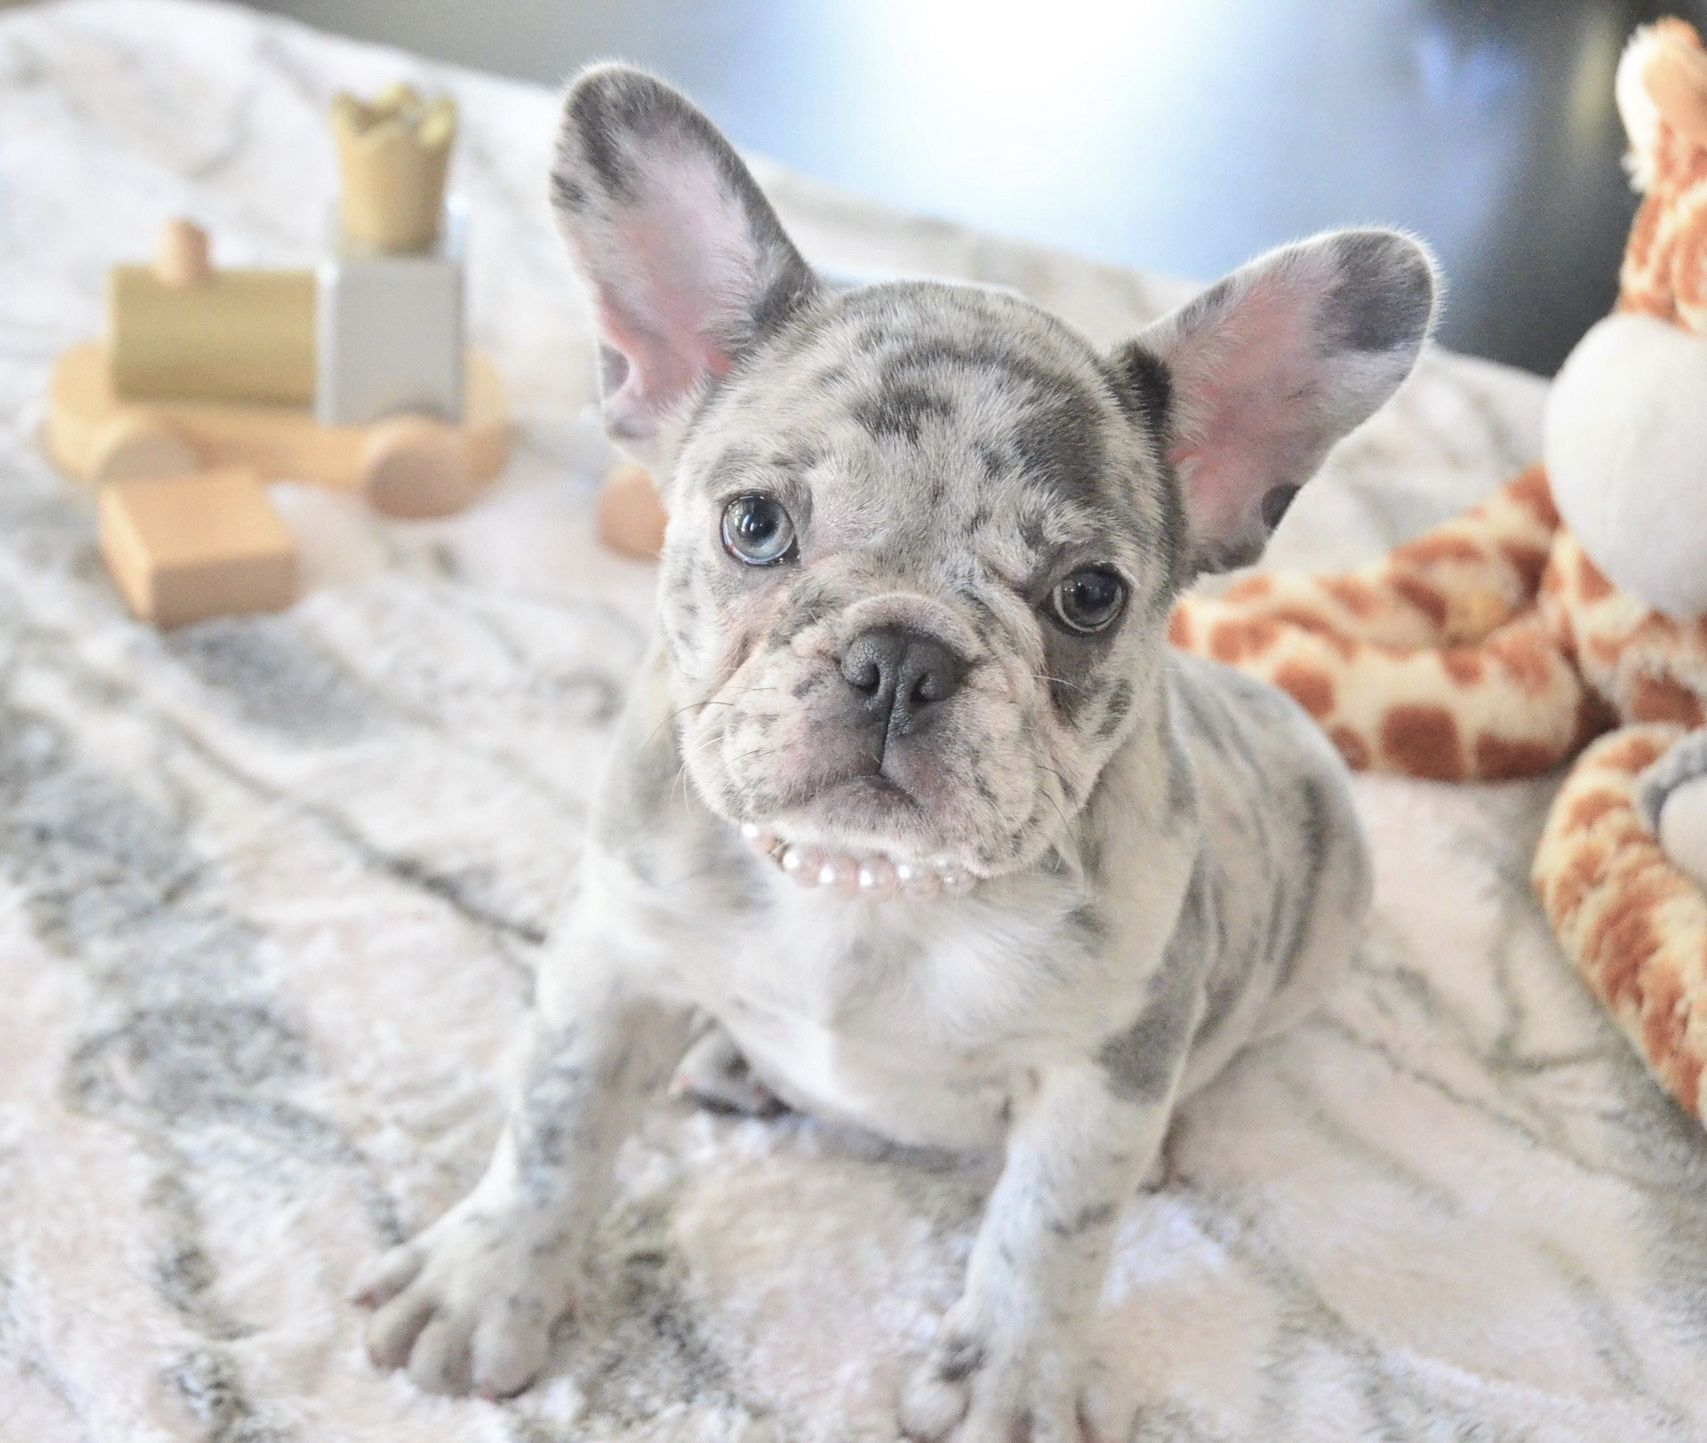 Blue Merle Female French Bulldog Puppy For Sale Blue French Bulldog Puppies French Bulldog Breeders French Bulldog Puppies